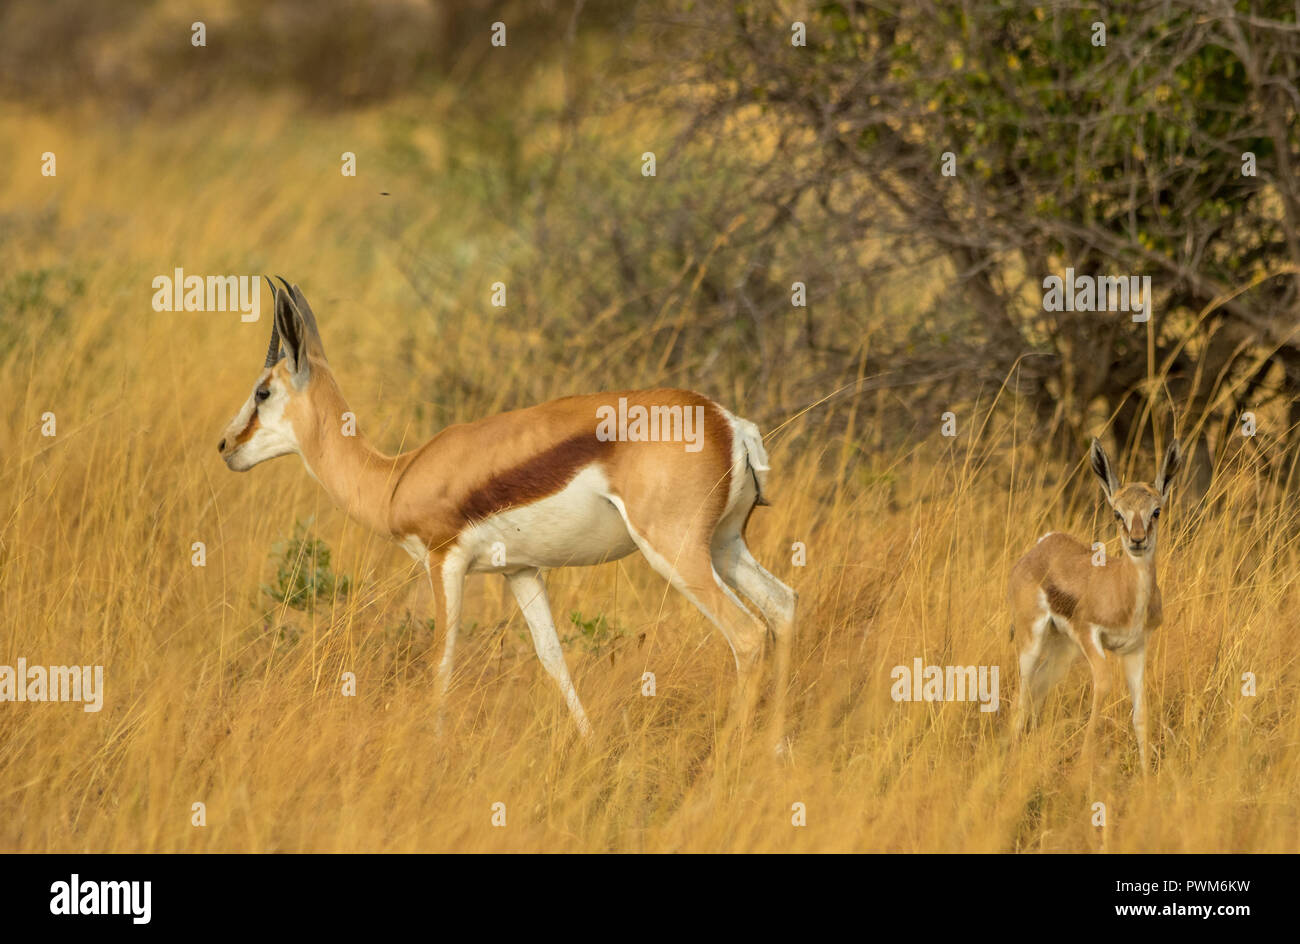 A springbok ewe and calf walk in the tall grass in the African wilderness image with copy space in landscape format - Stock Image